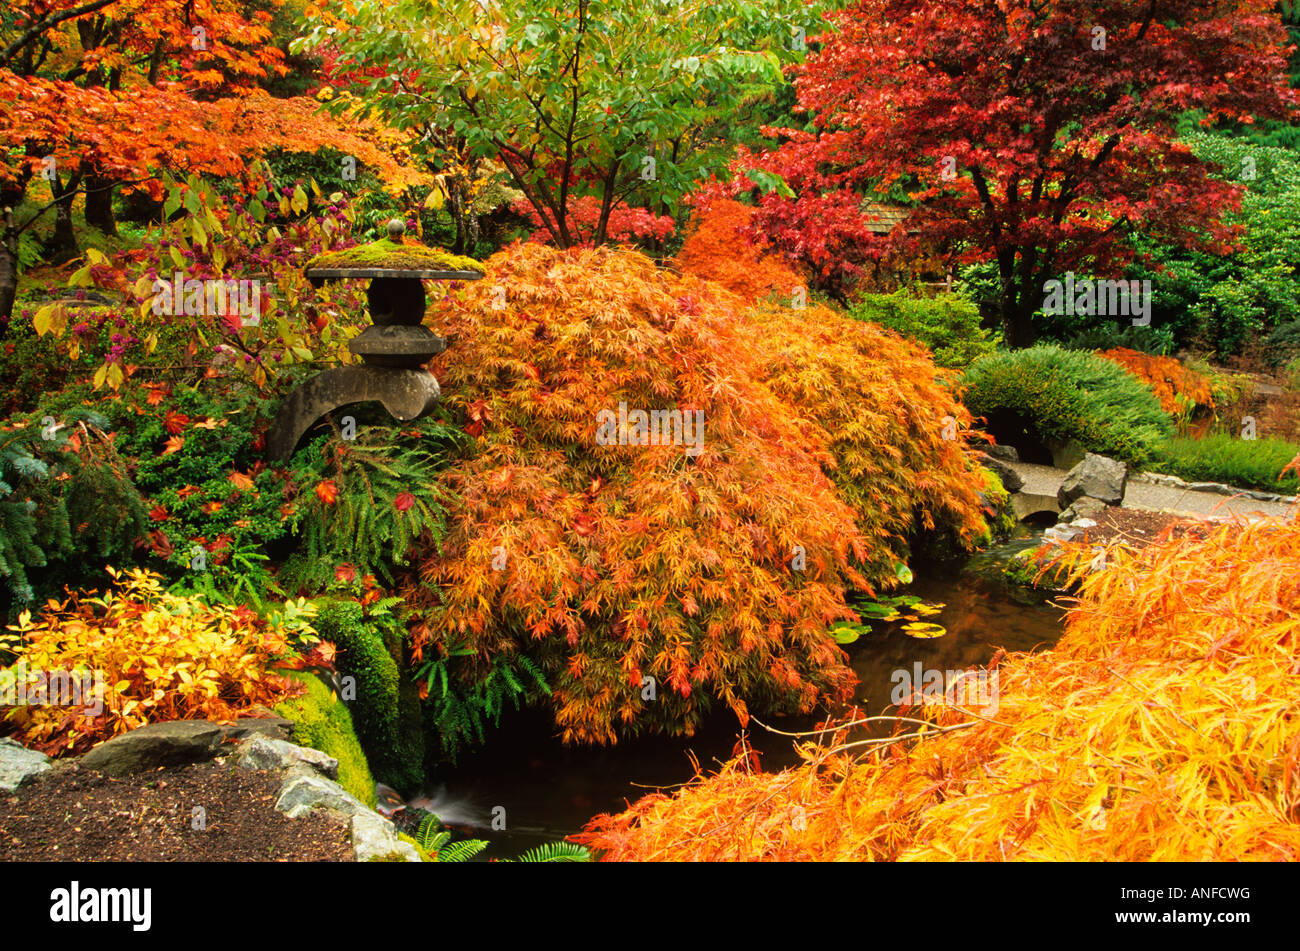 Autumn colors in butchart gardens victoria vancouver island autumn colors in butchart gardens victoria vancouver island british columbia canada thecheapjerseys Choice Image